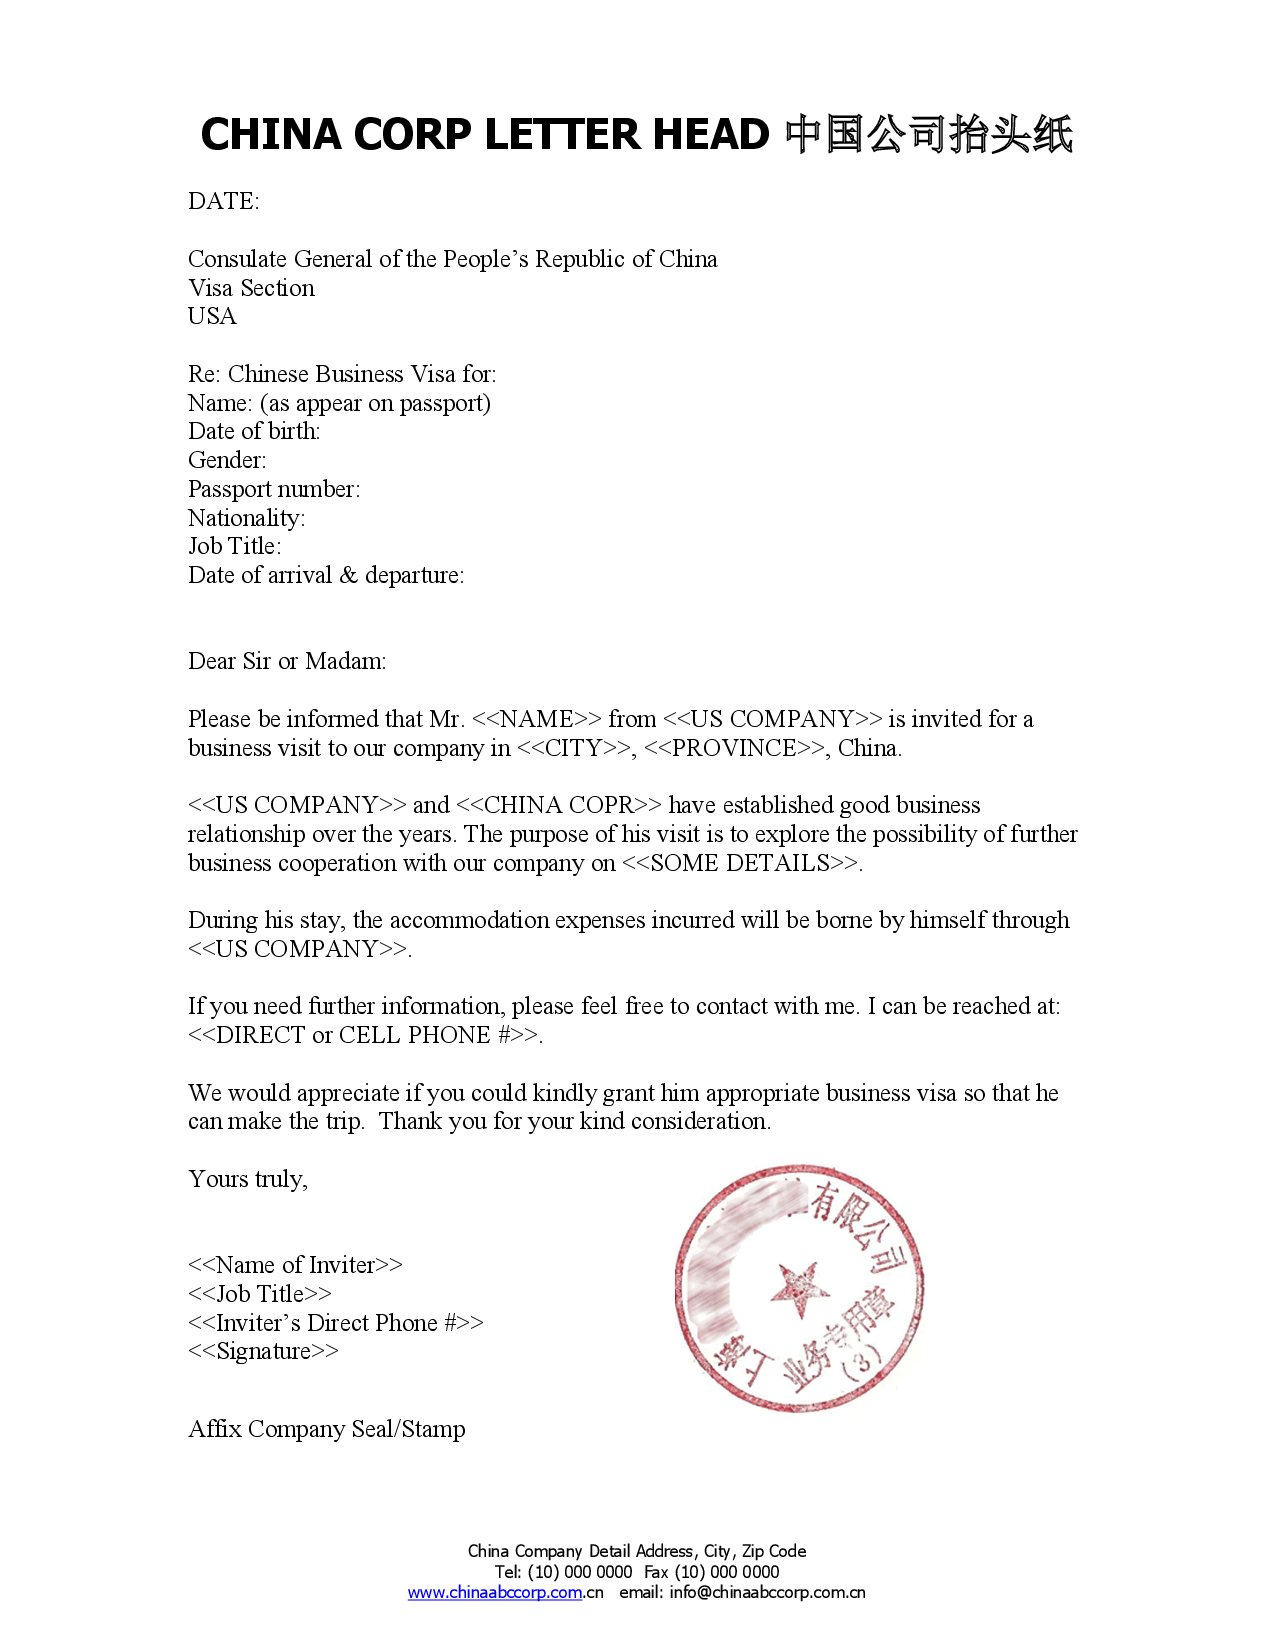 Format invitation letter for business visa to china lettervisa format invitation letter for business visa to china lettervisa invitation letter application letter sample stopboris Images